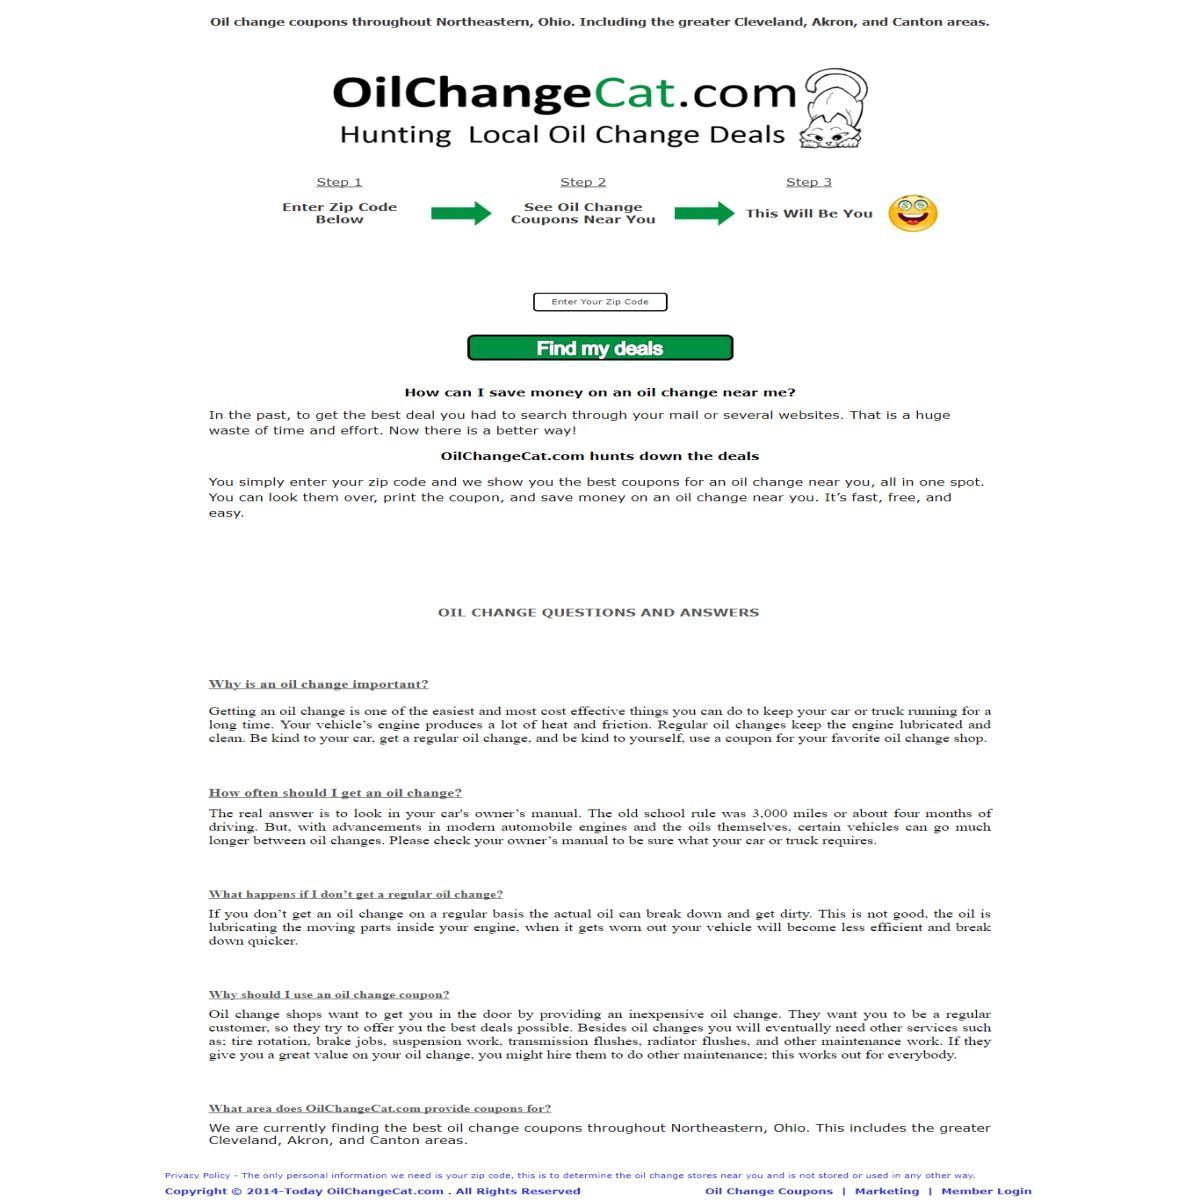 Oil change cat are currently finding the best oil change coupons oil change cat are currently finding the best oil change coupons throughout northeastern ohio you simply enter your zip code and they show you the best solutioingenieria Images